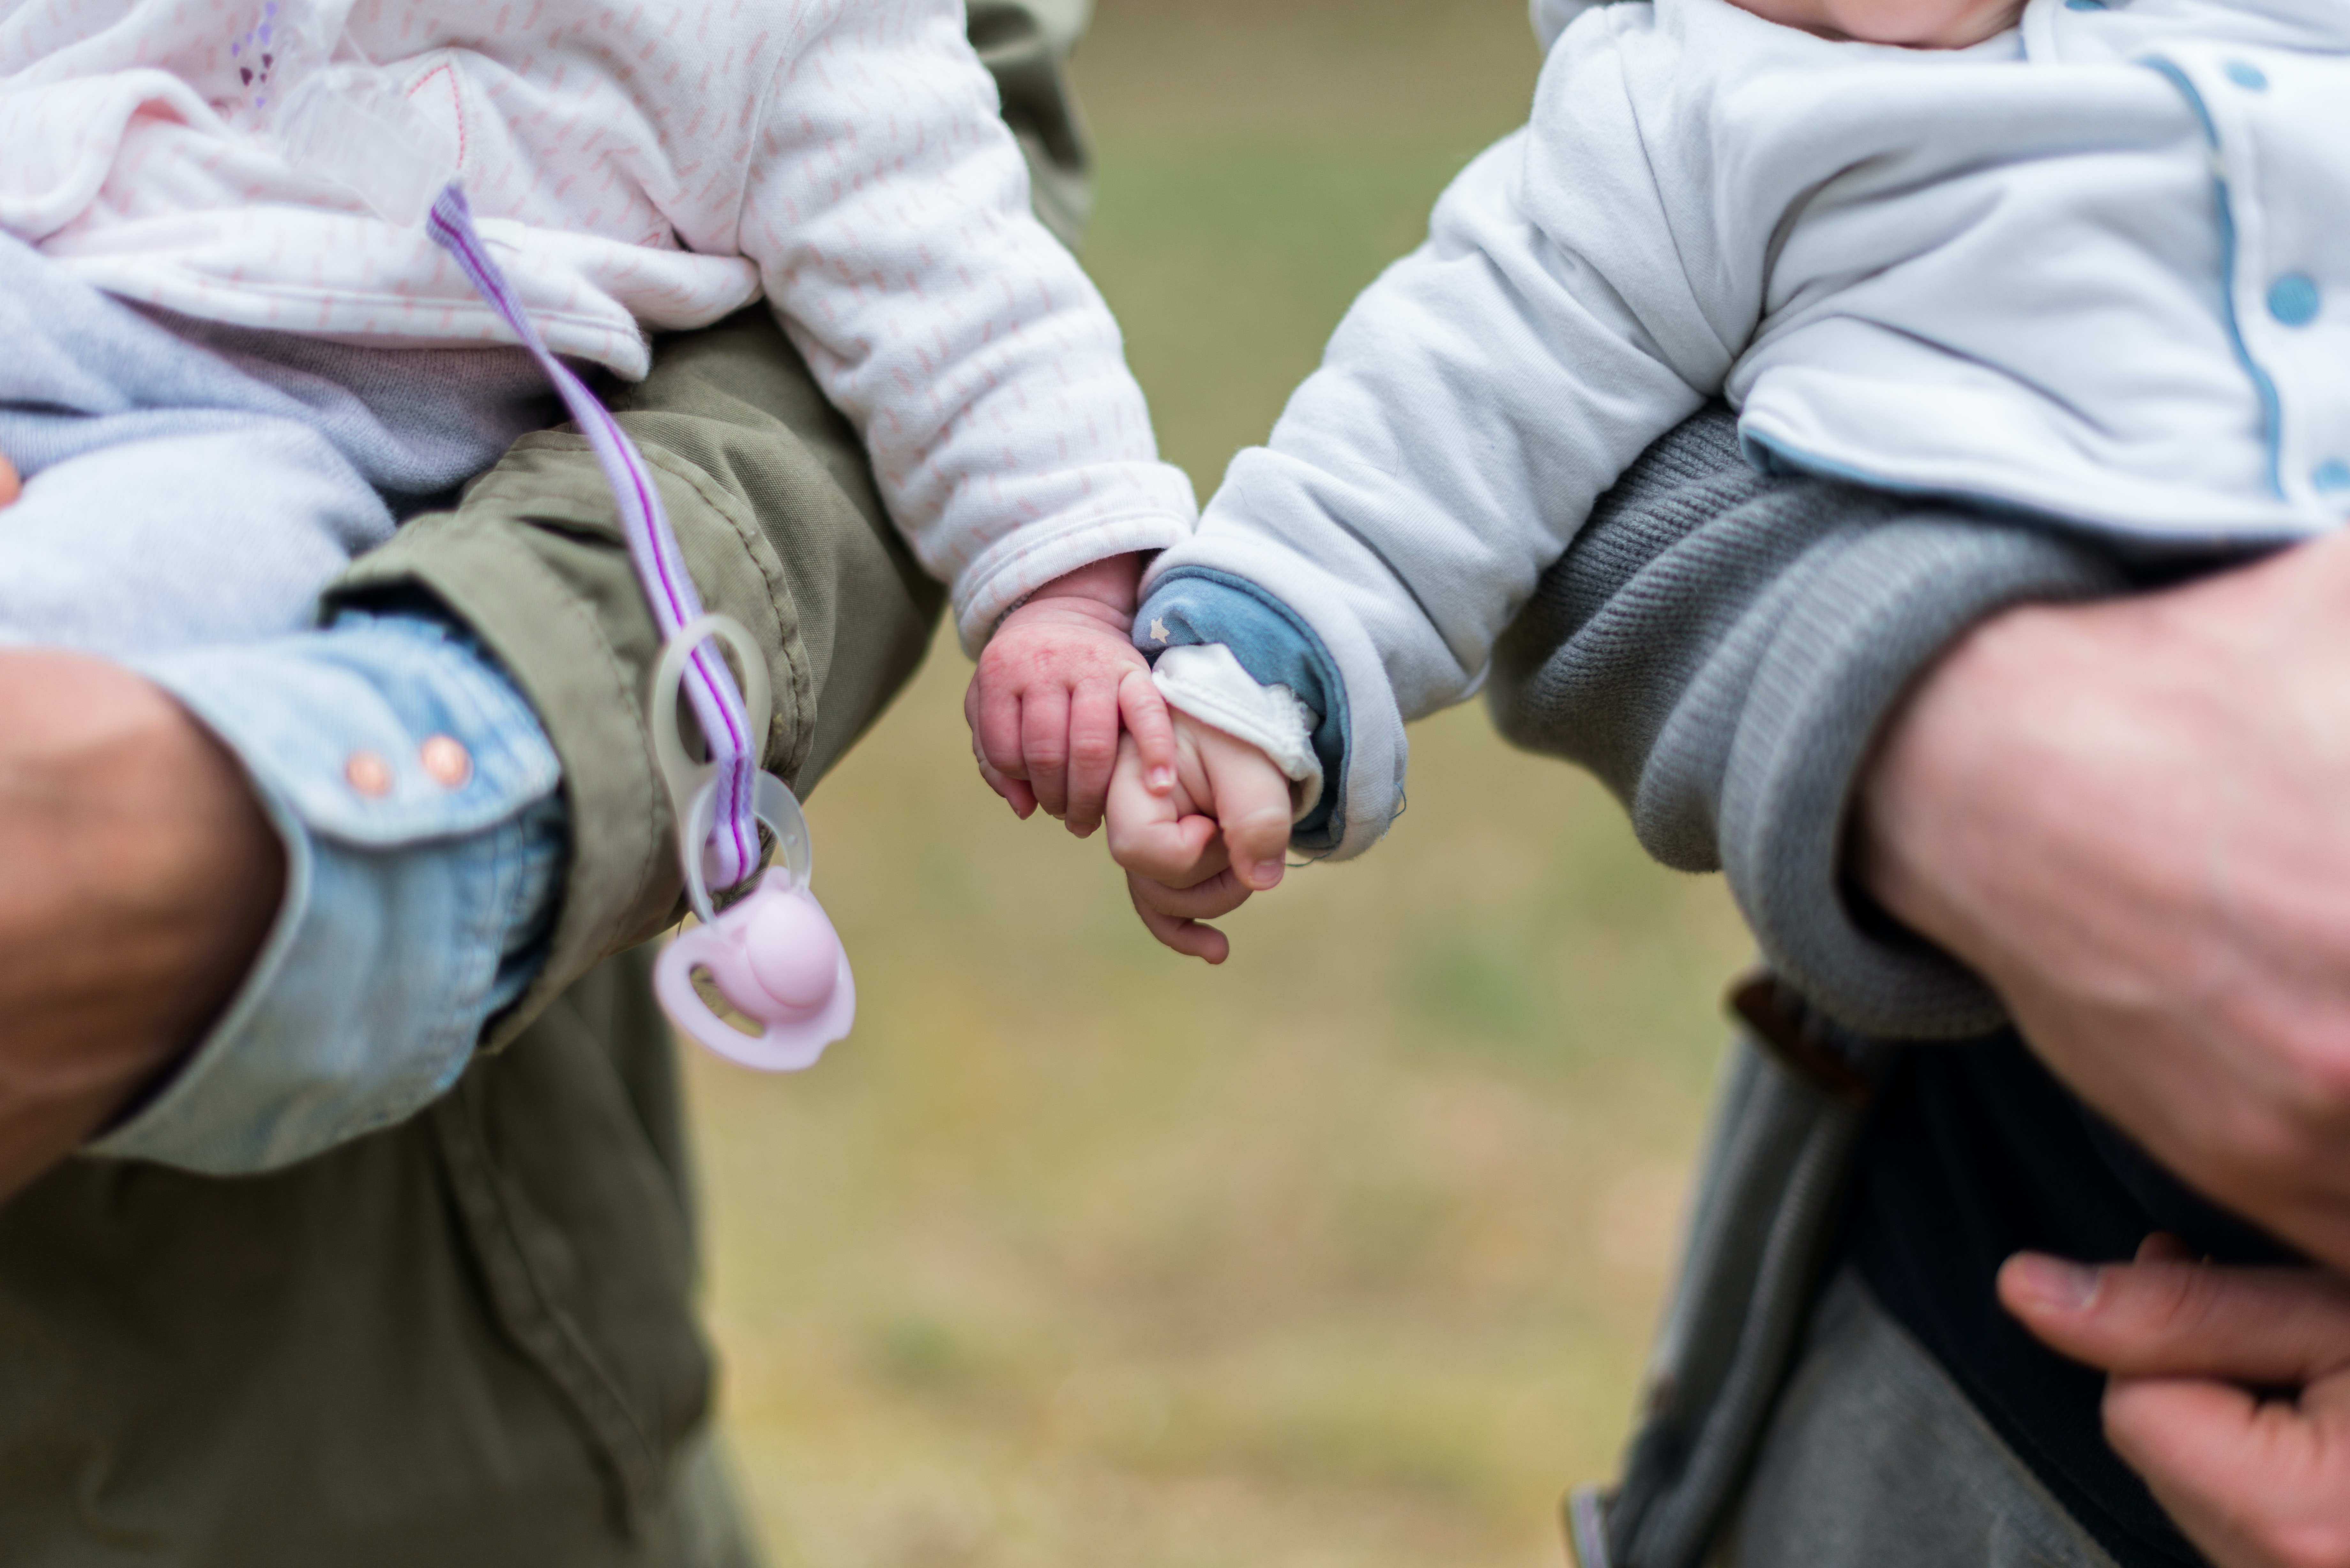 Parents each holding a young child, and the children reach out to touch each other's hands